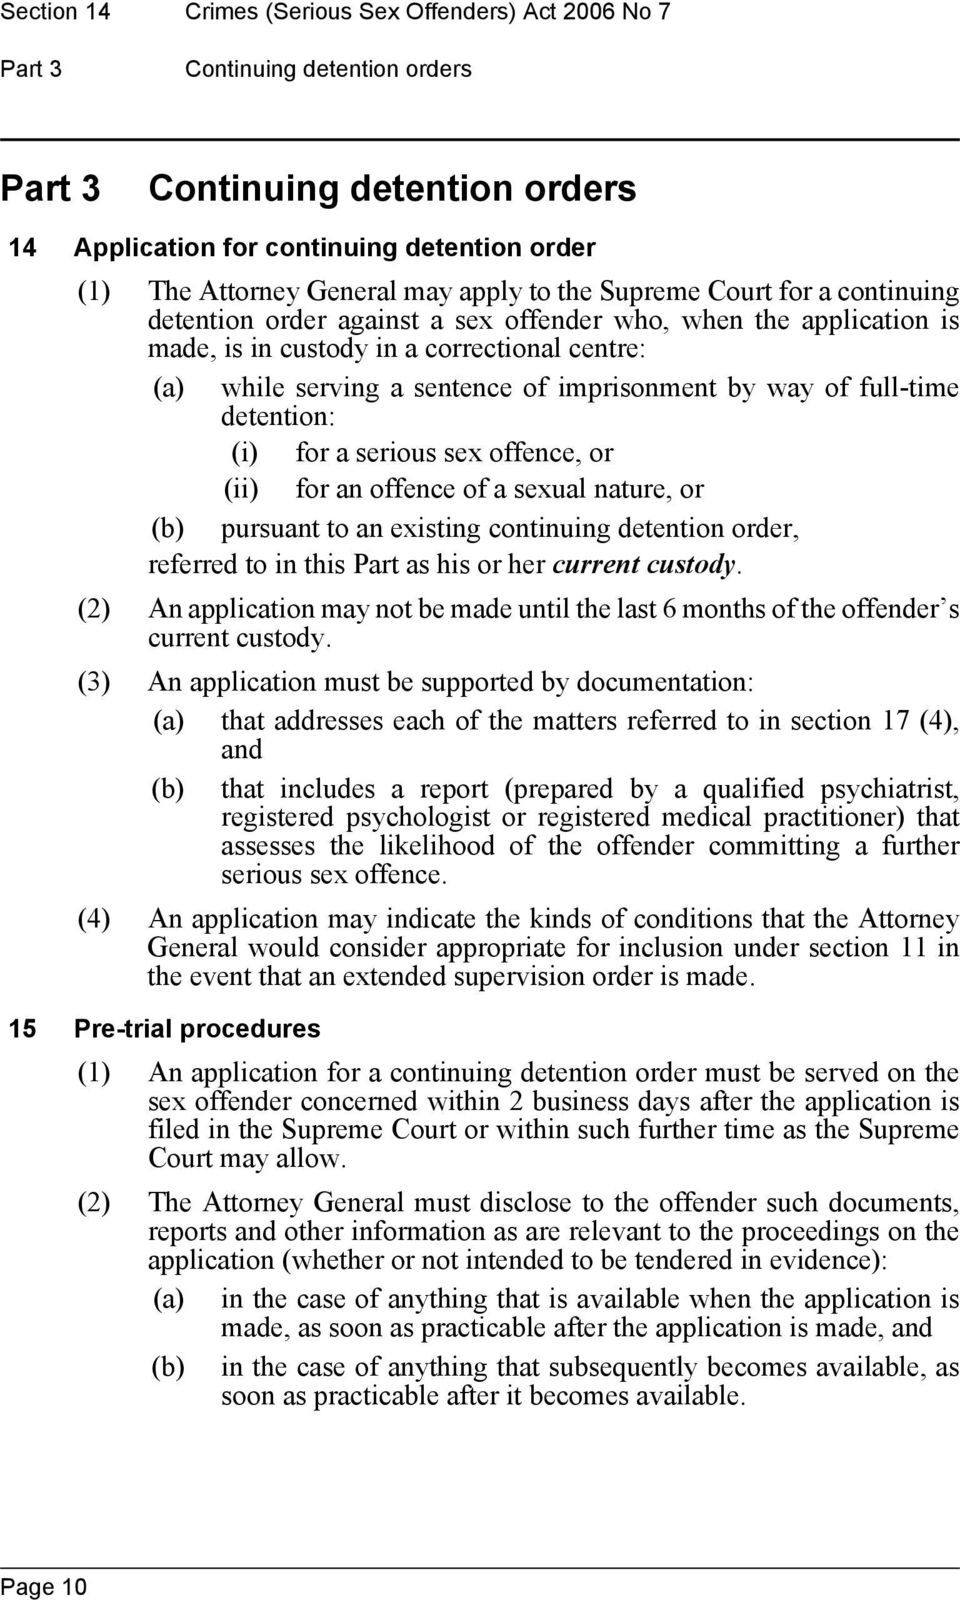 imprisonment by way of full-time detention: (i) for a serious sex offence, or (ii) for an offence of a sexual nature, or (b) pursuant to an existing continuing detention order, referred to in this